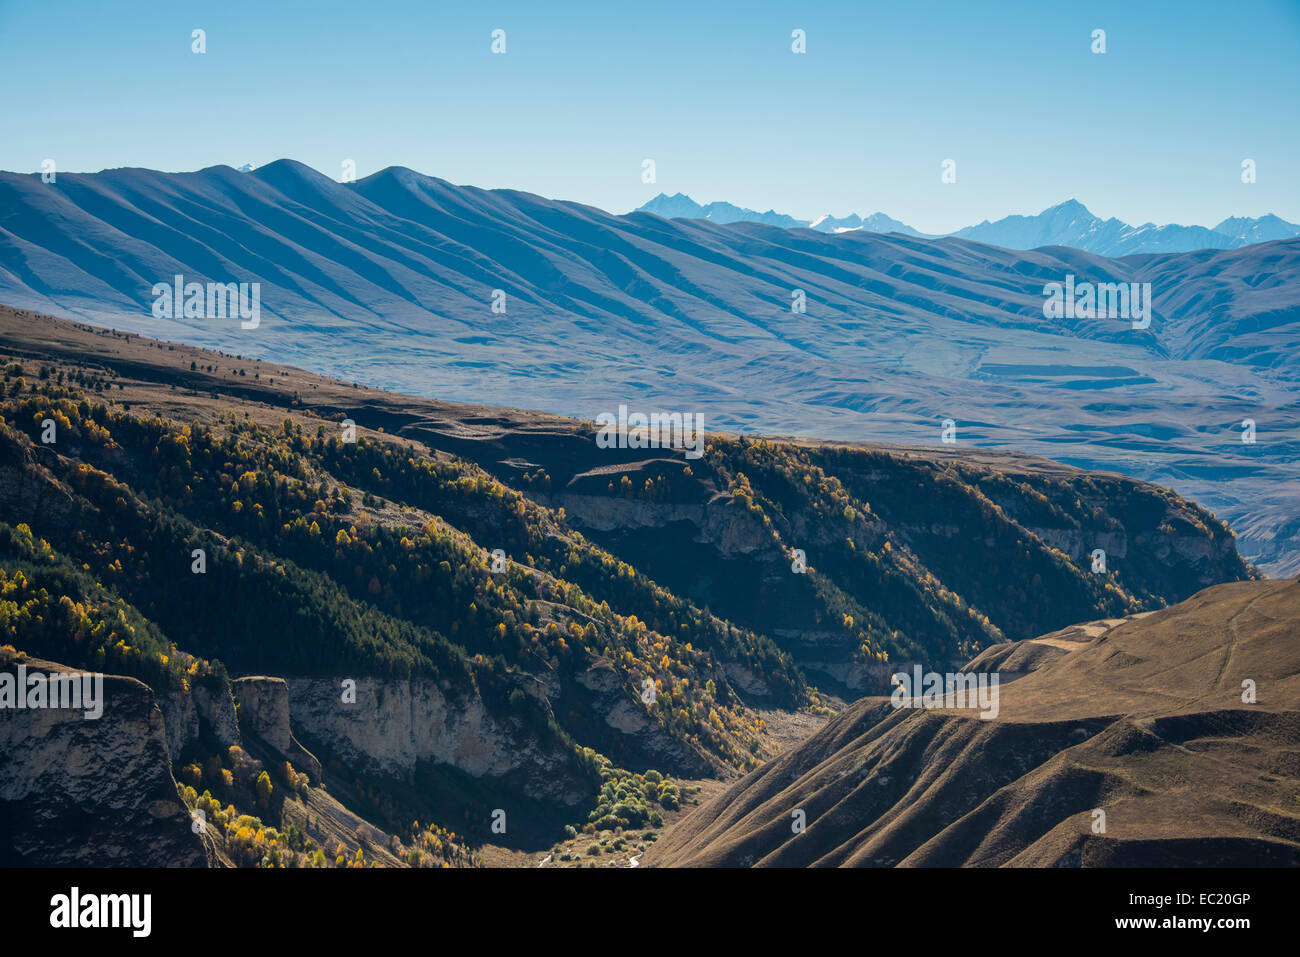 Overlook over the Chechen mountains, Chechnya, Caucasus, Russia - Stock Image